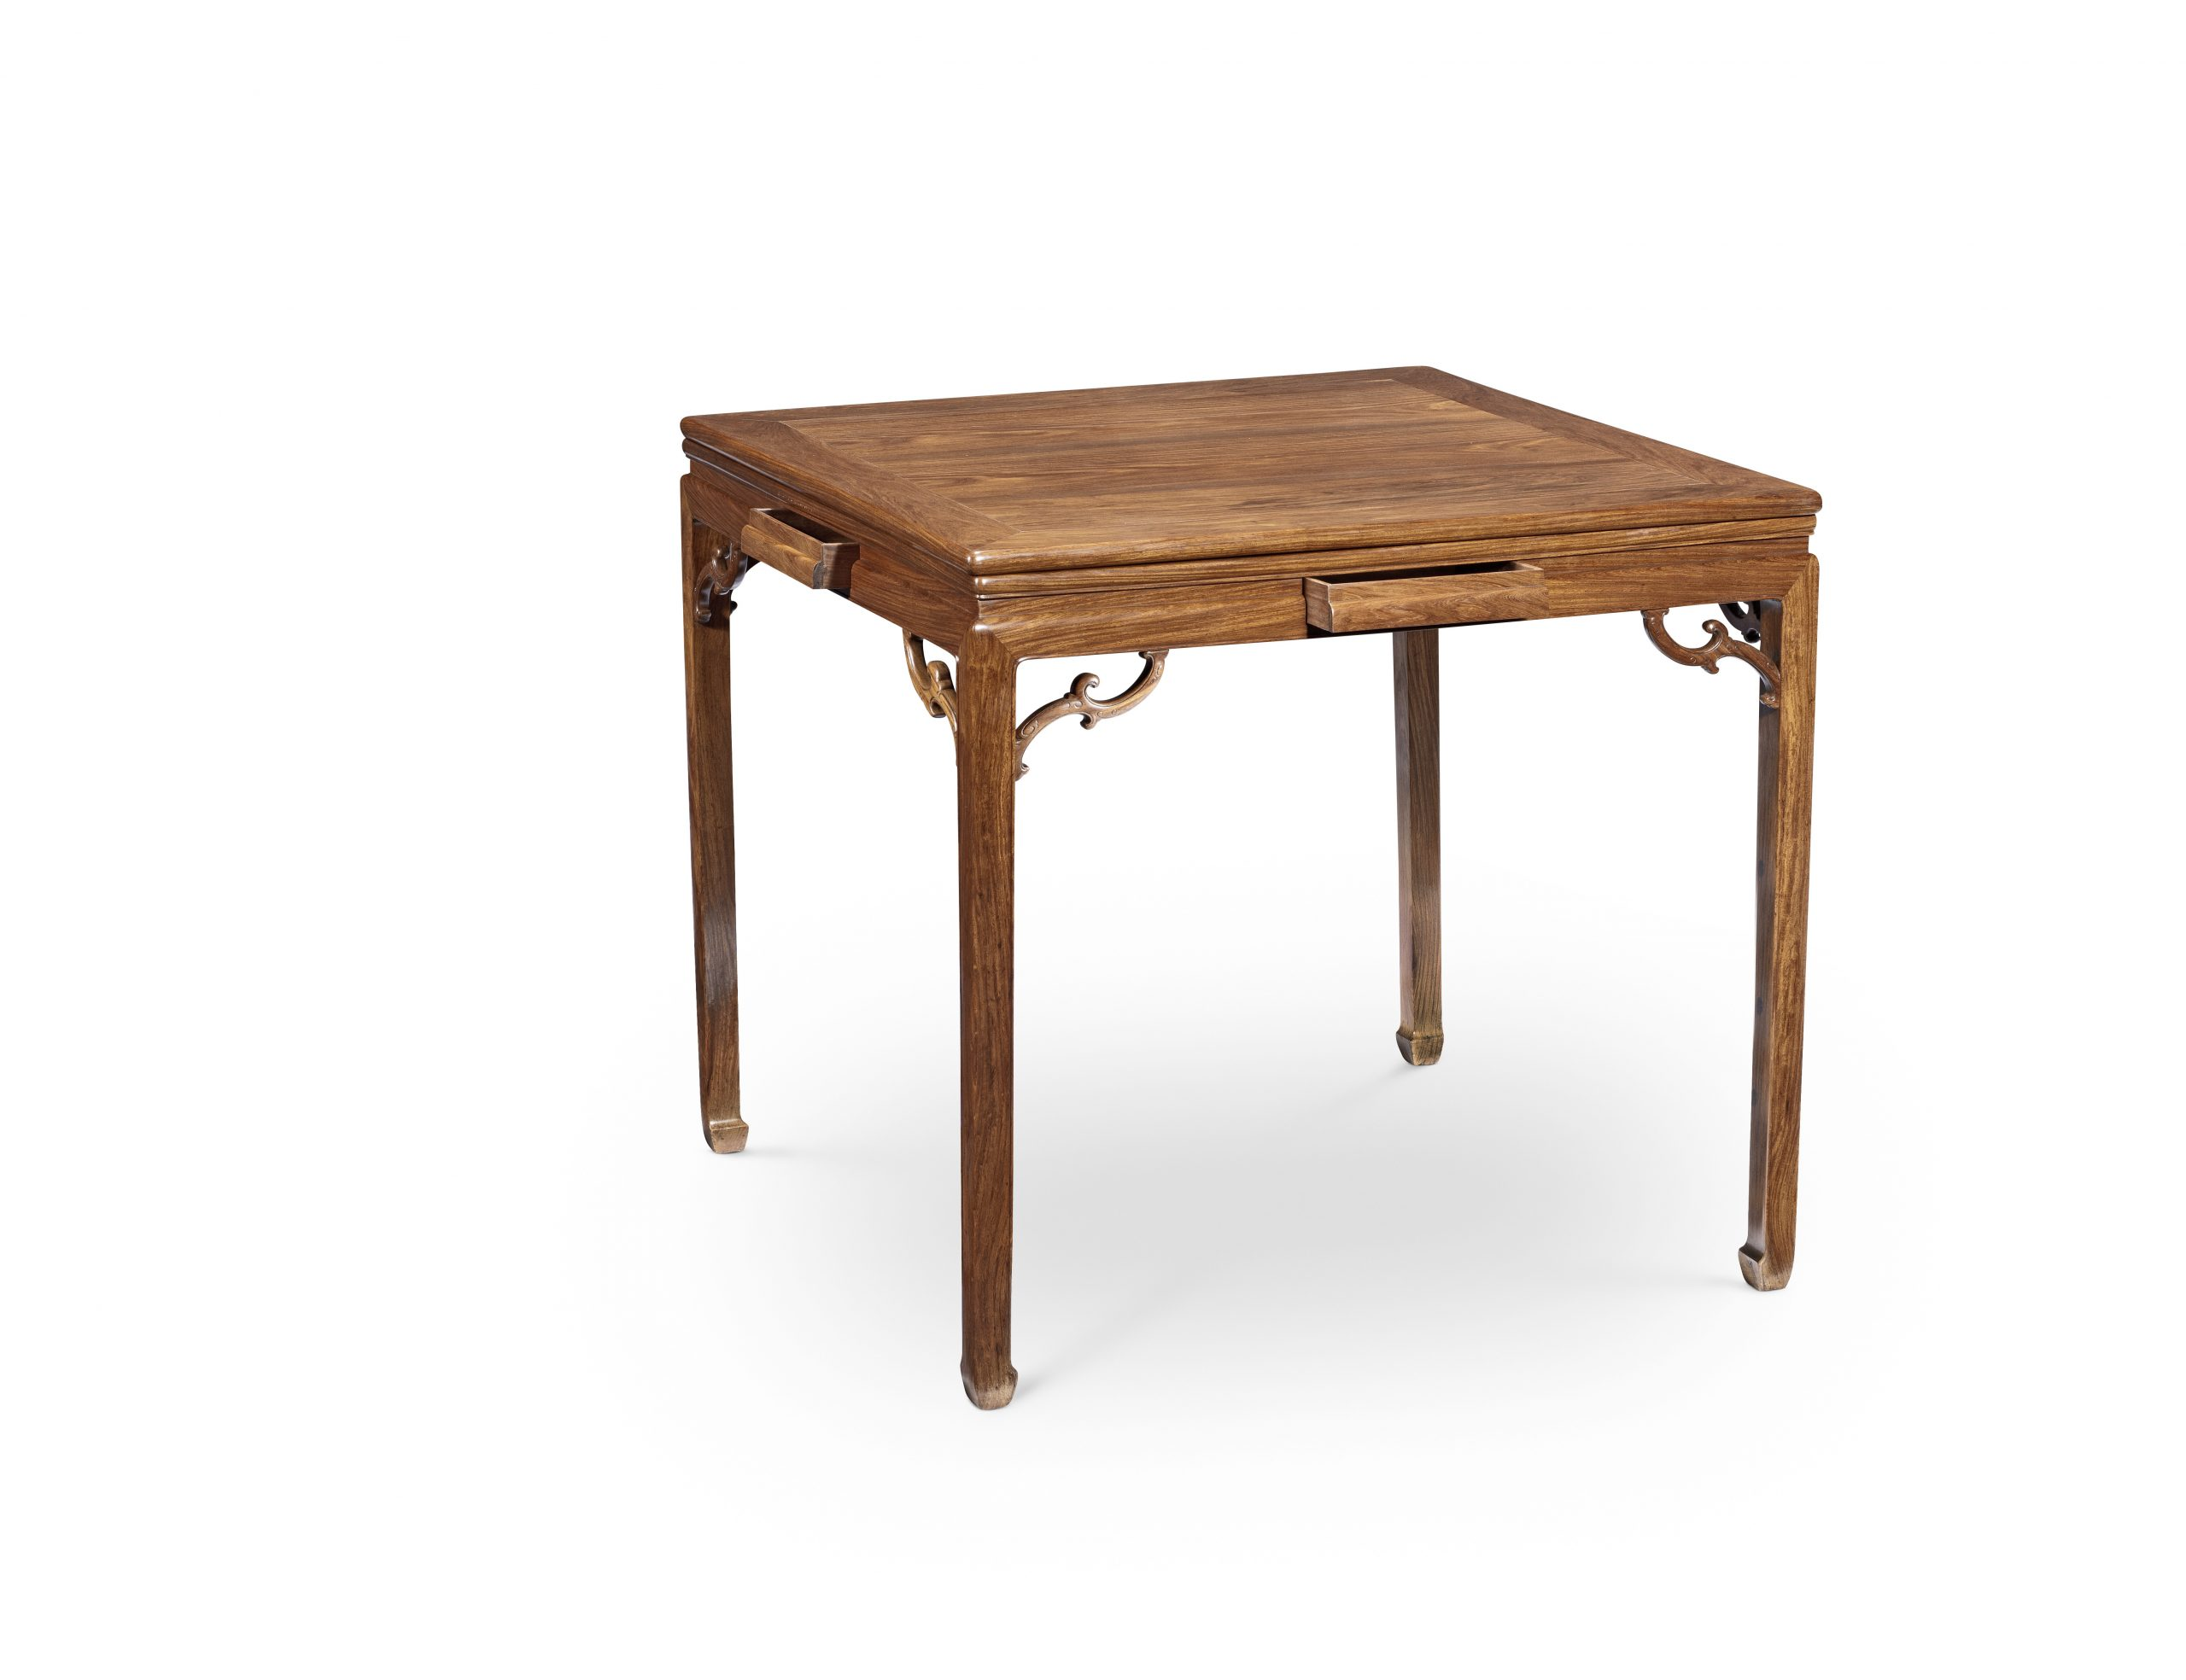 A magnificent huanghuali square games table, qizhuo, 18th century - The H Collection.